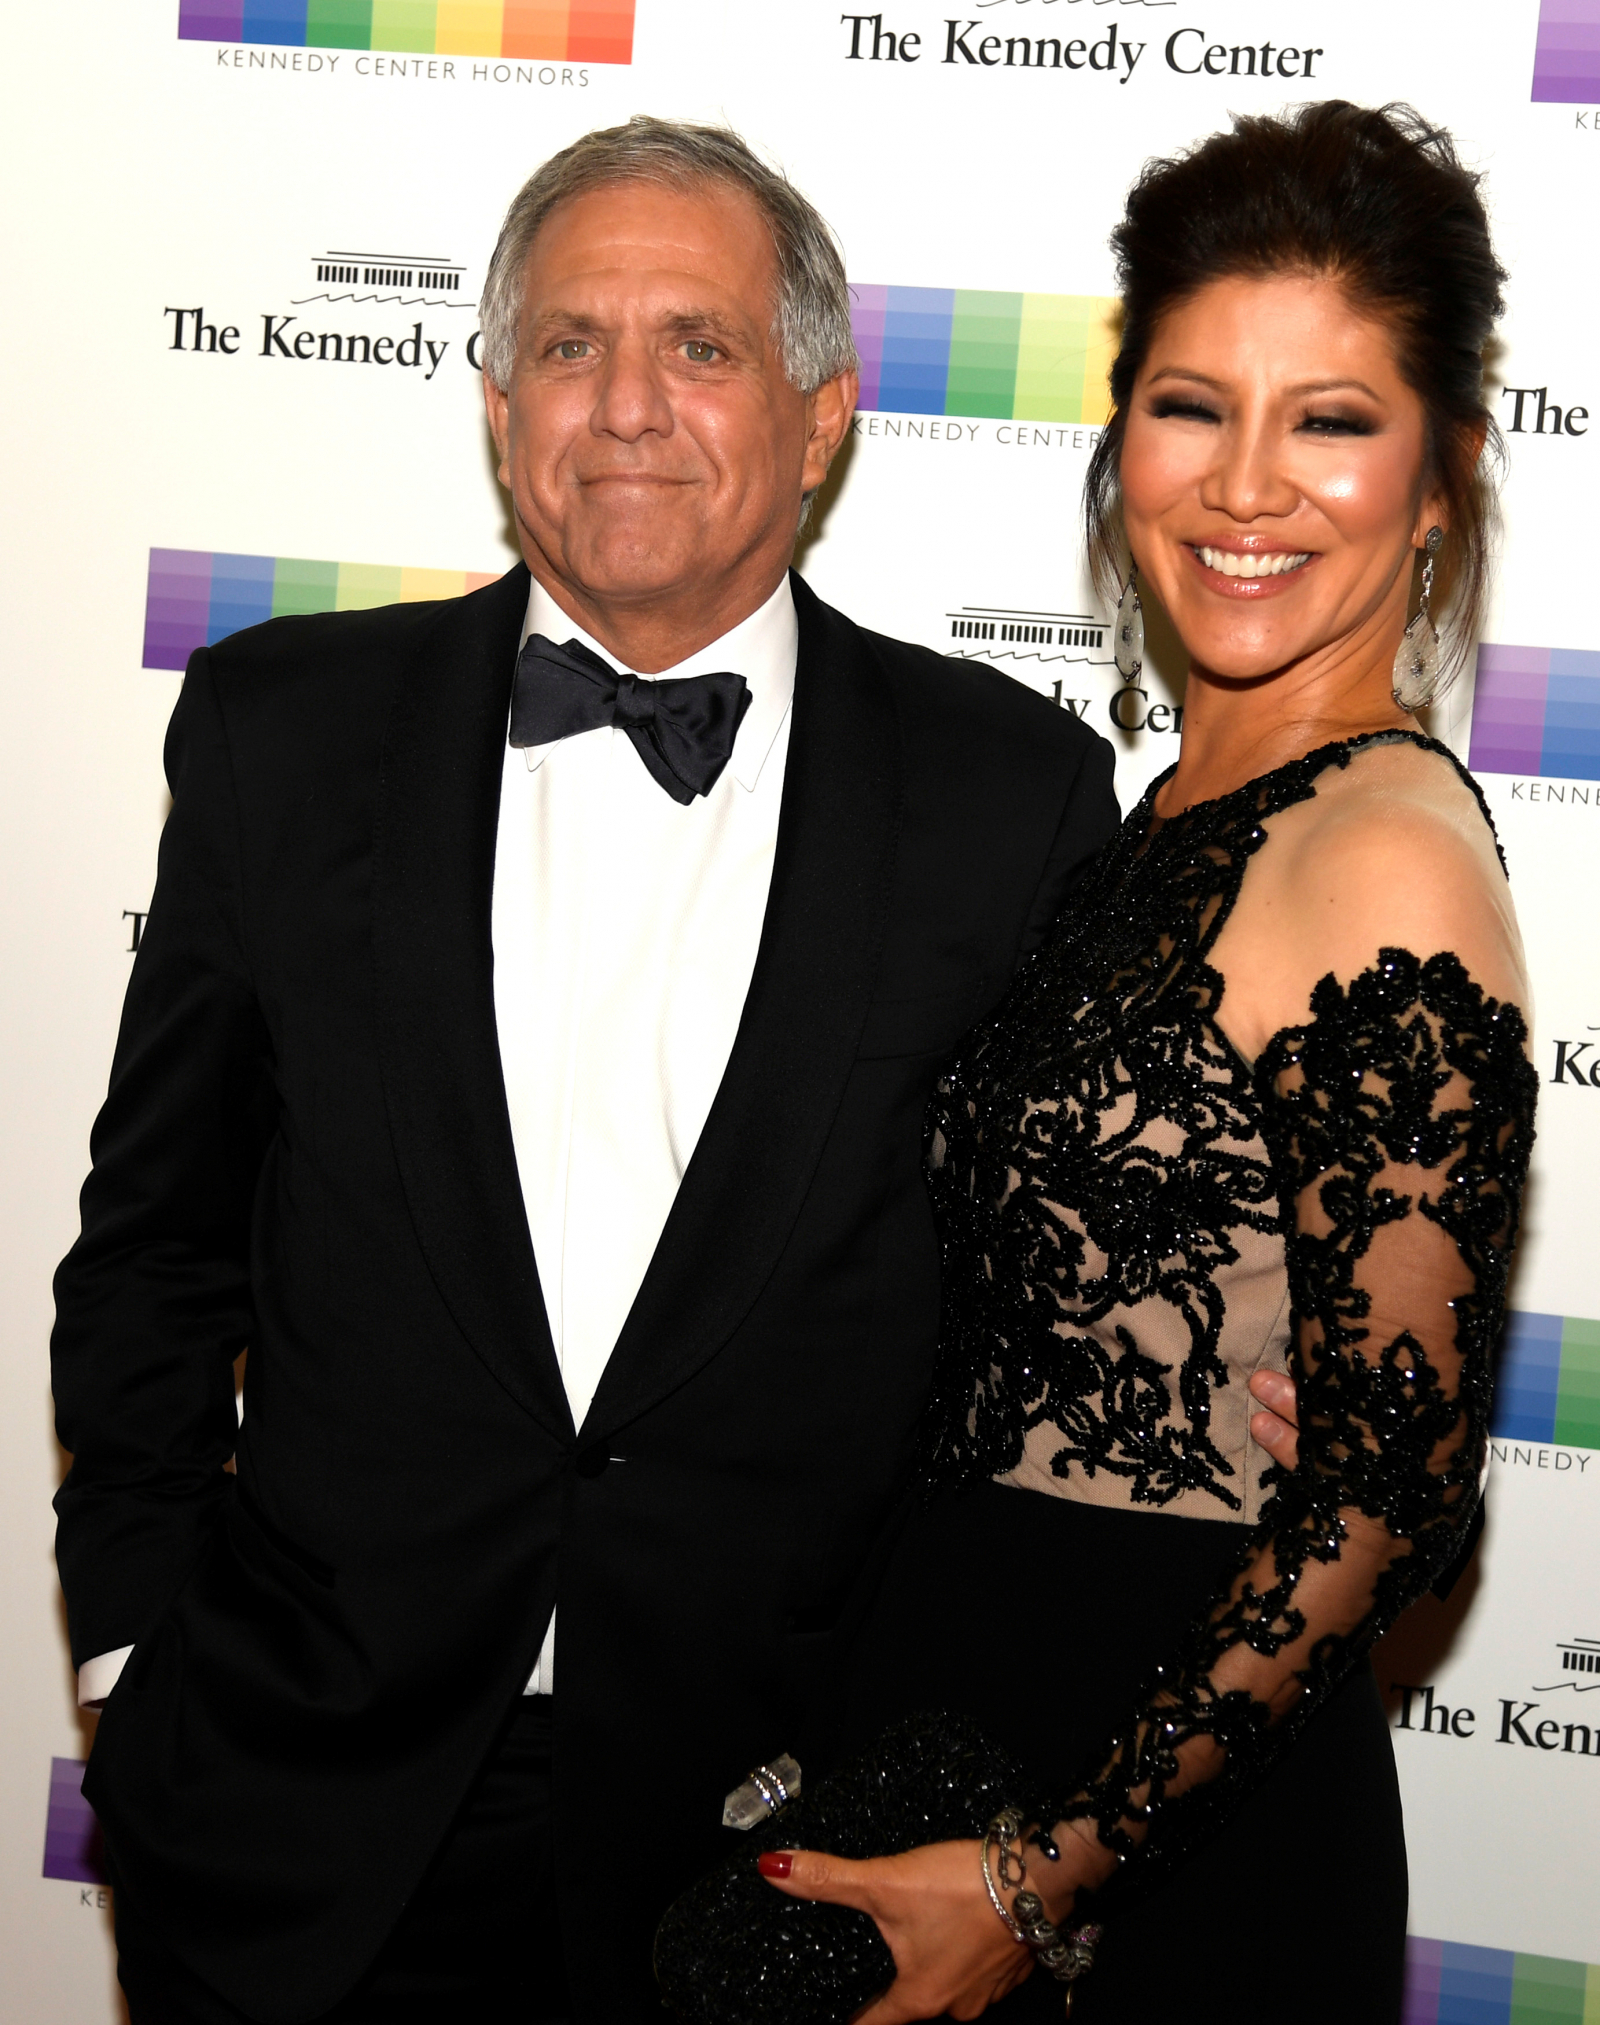 CBS CEO Leslie Moonves resigns after 12 women make 'appalling' sexual harassment claims - Dotemirates